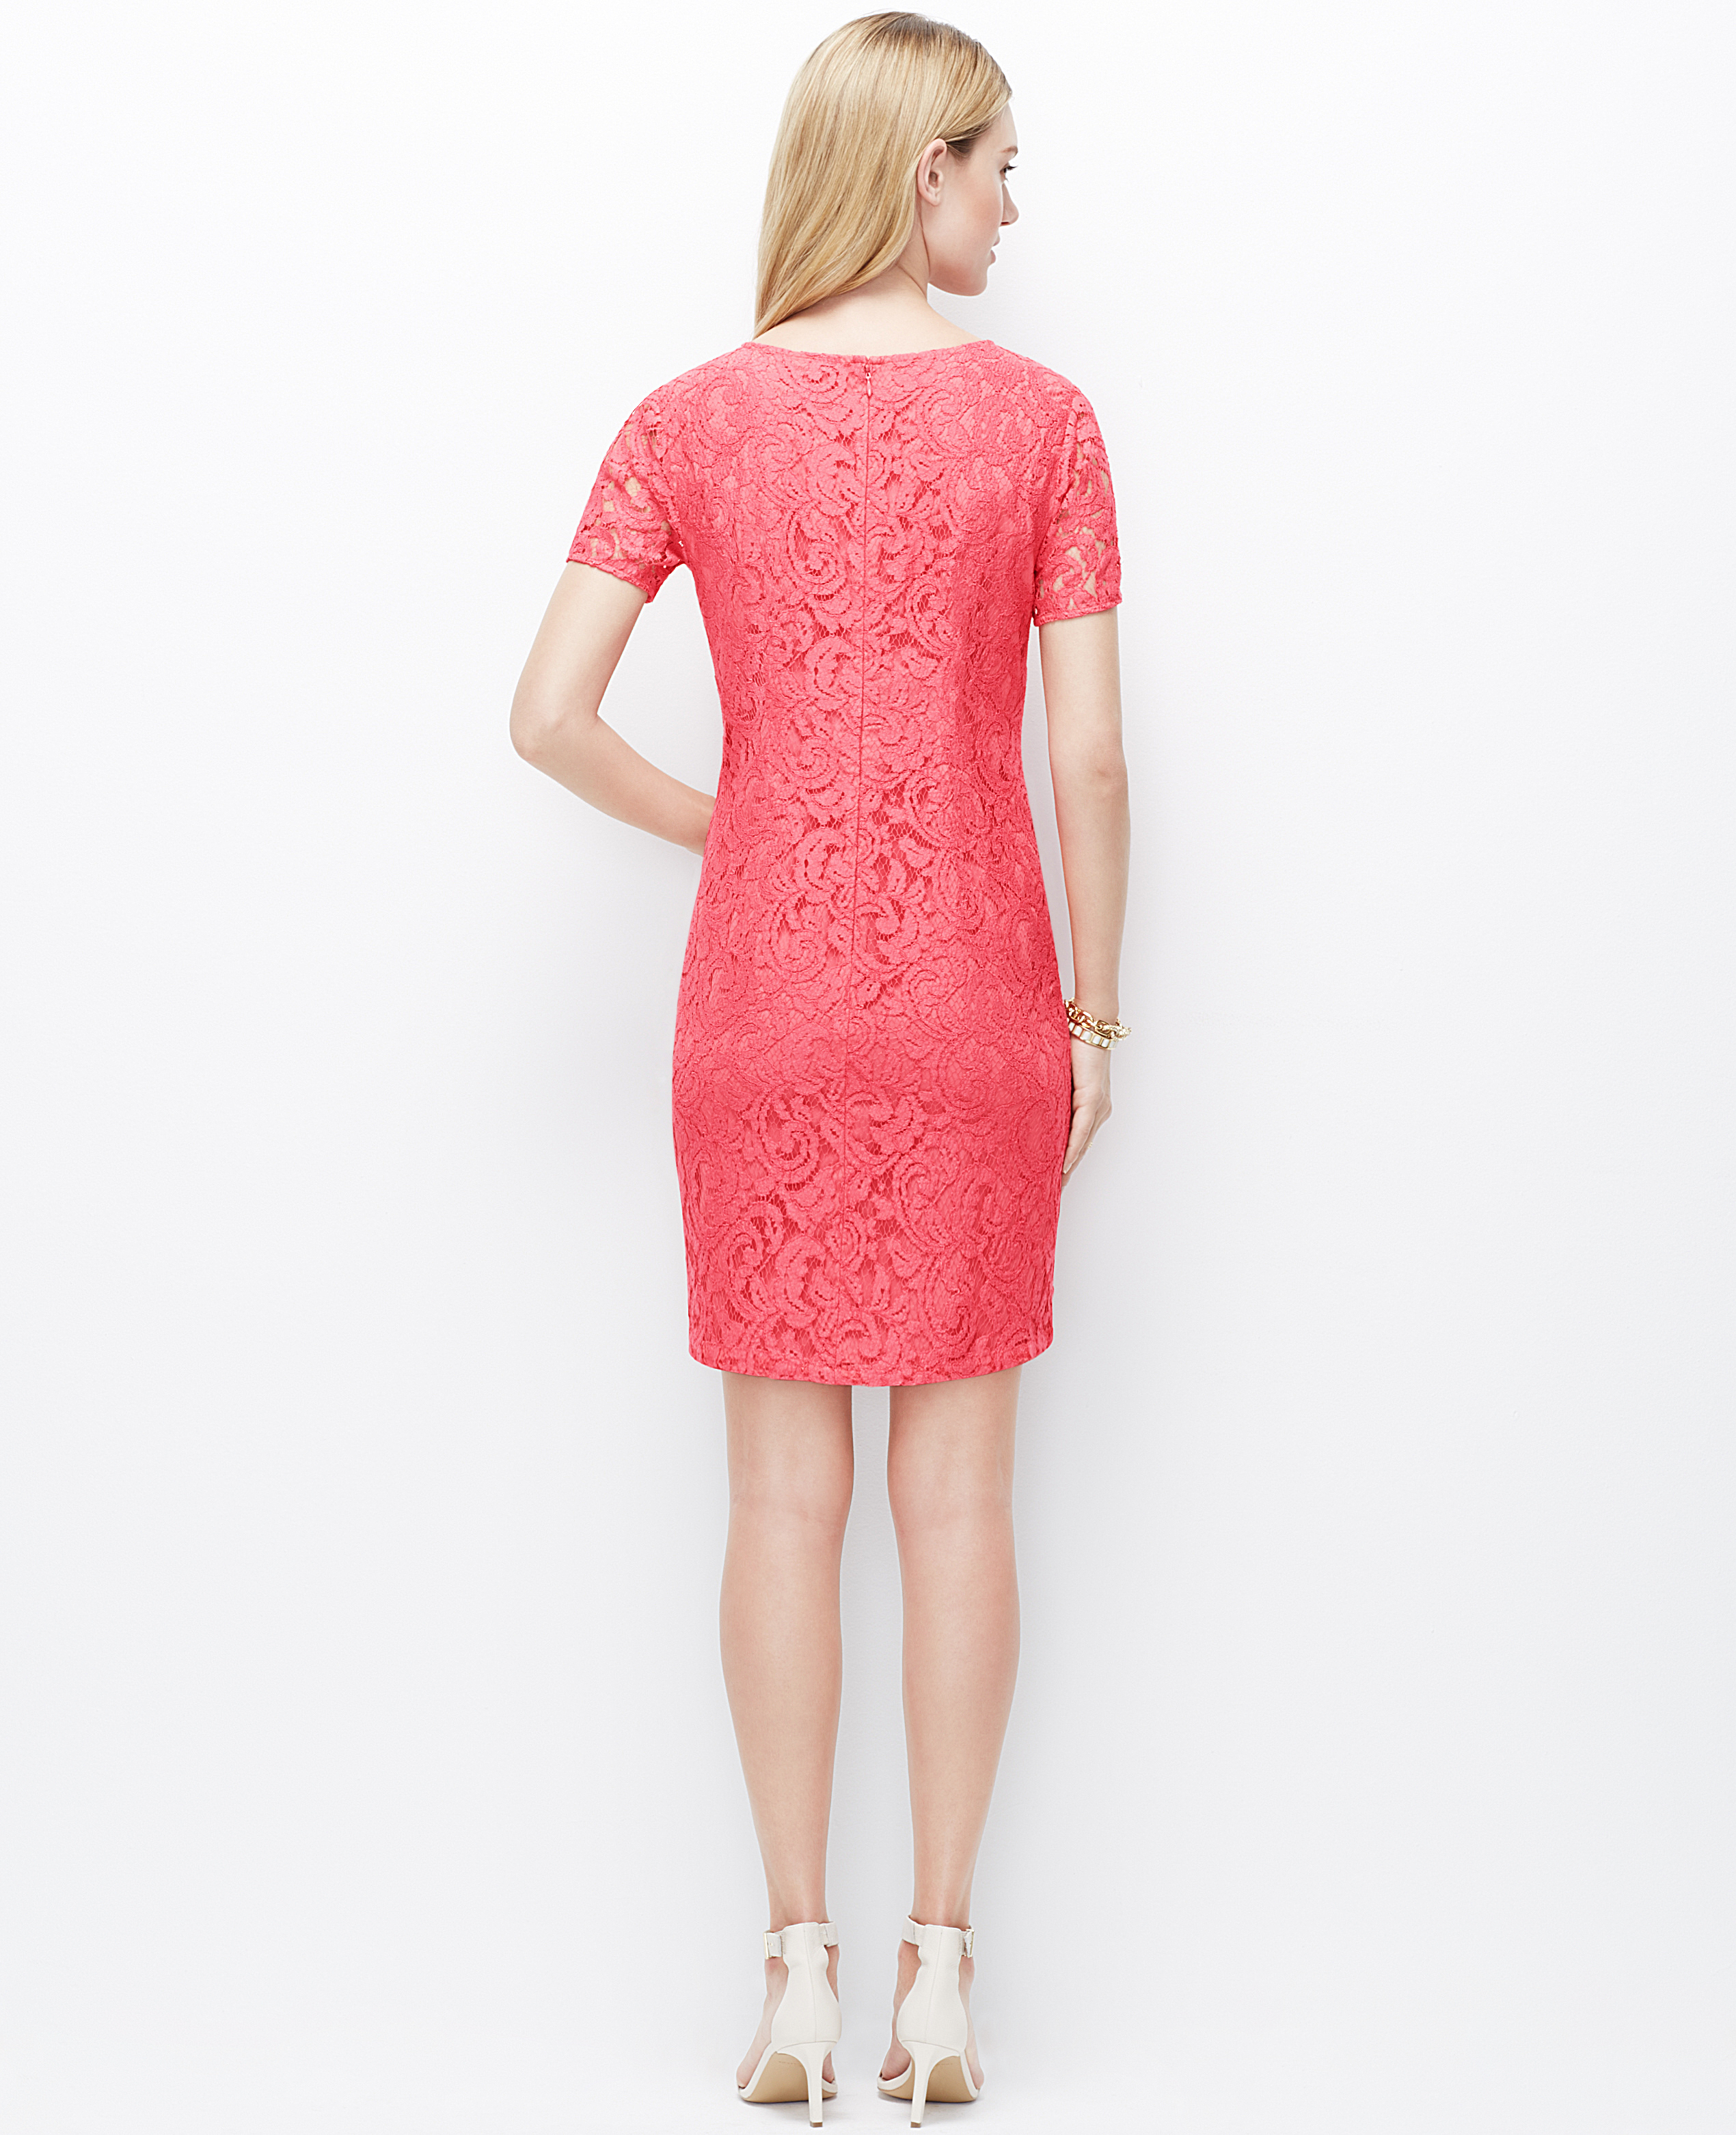 e2bd37258bcaff Ann Taylor Lace Shift Dress in Pink - Lyst